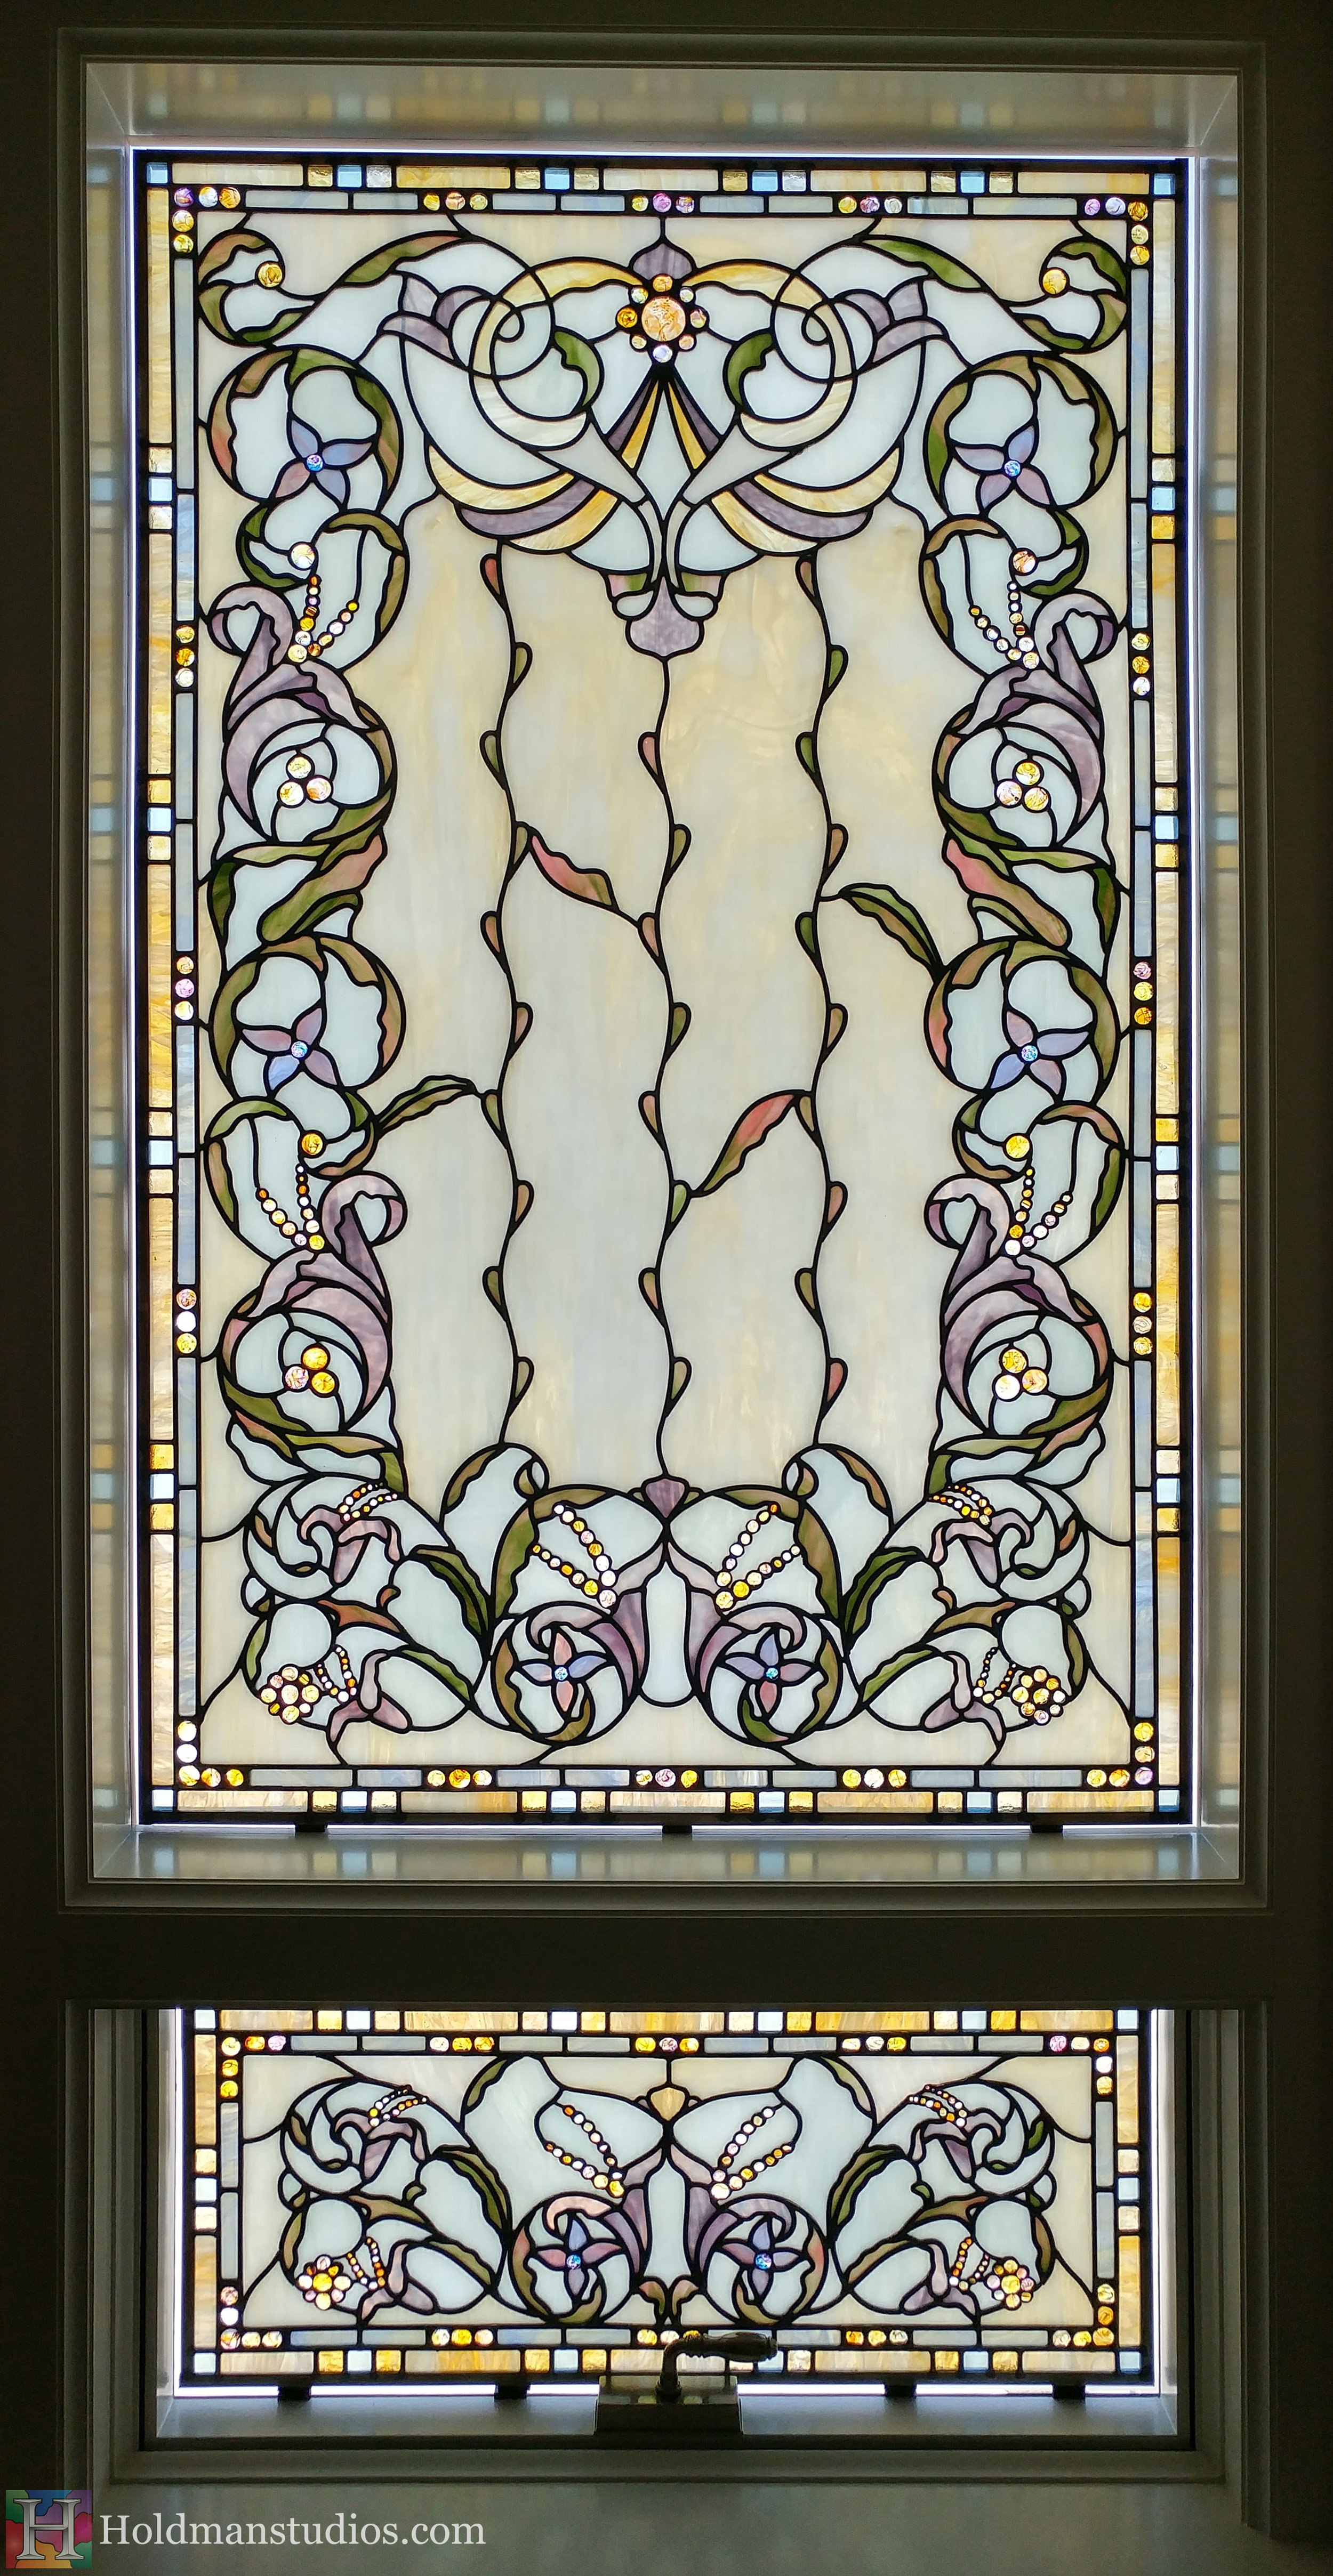 Holdman-Studios-Stained-Glass-Small-Windows-Flowers-Floral-Pattern-Handmade-Jewels-Square-Rectangles.jpg